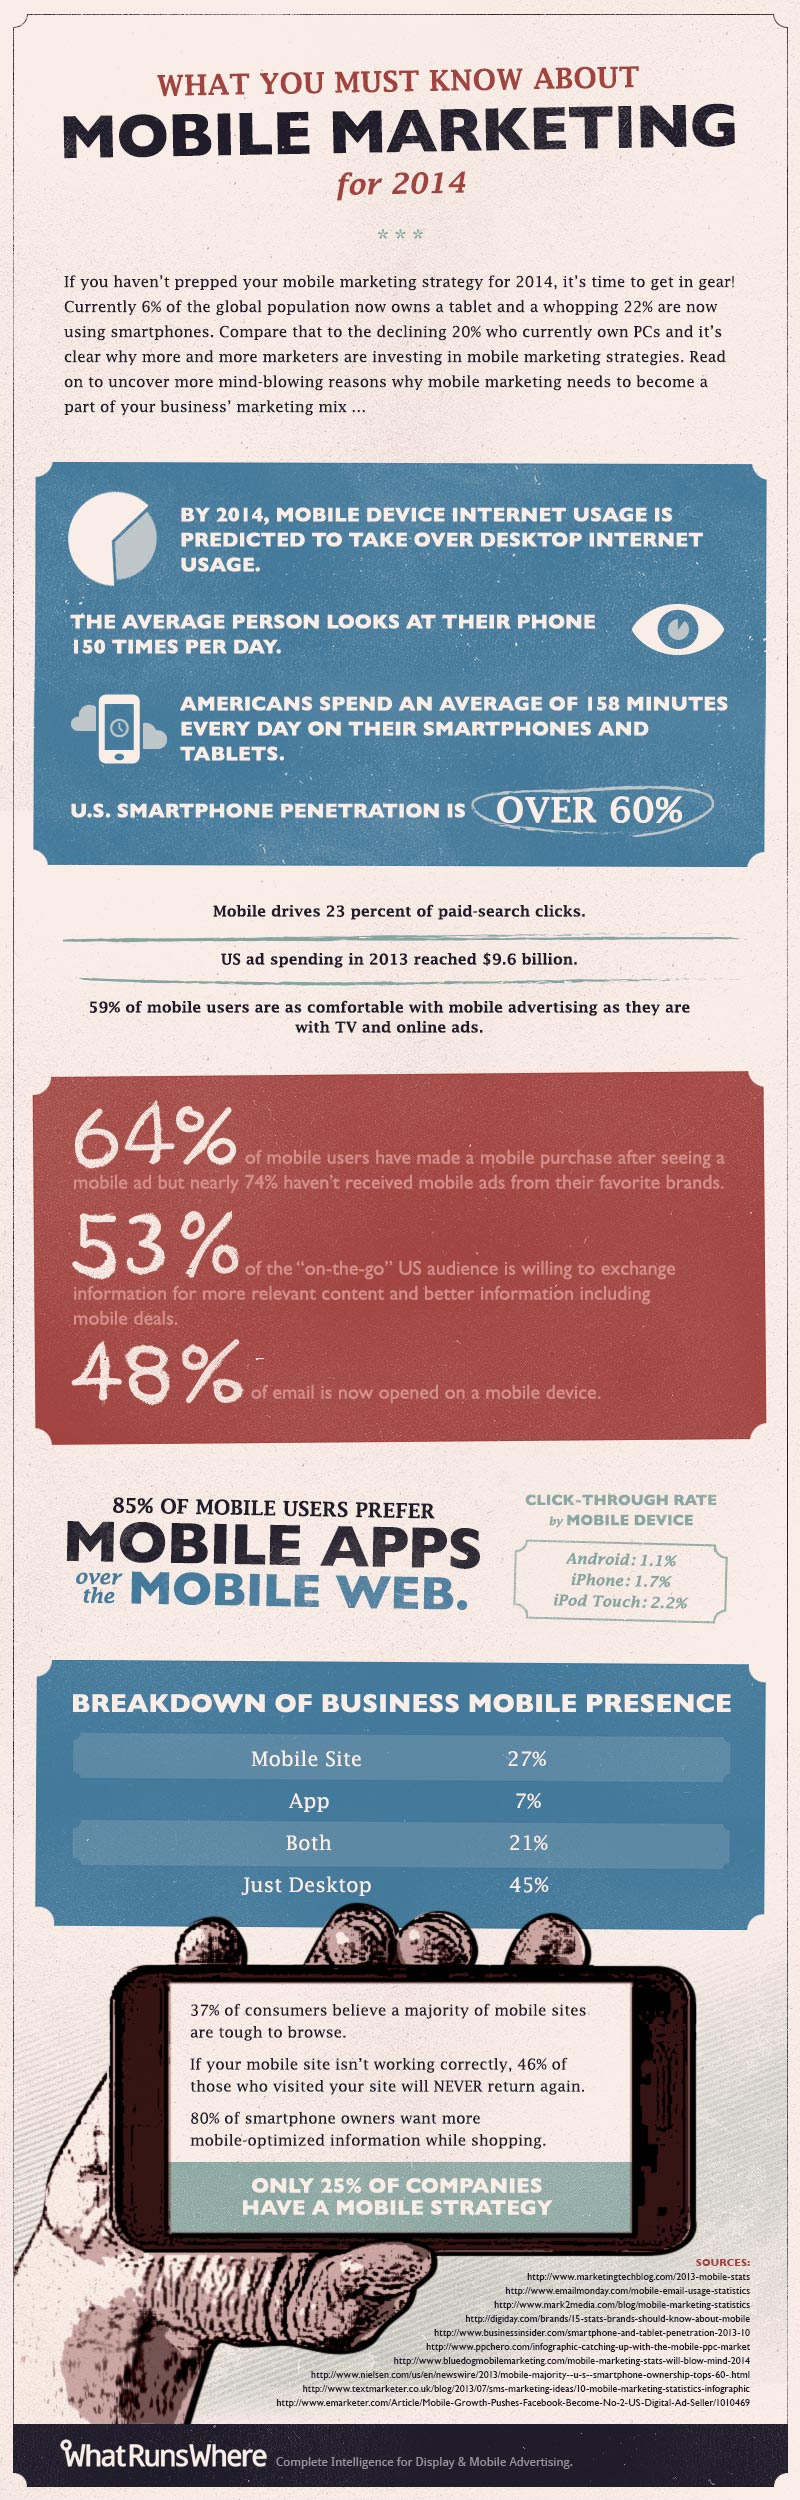 What You Must Know About Mobile Marketing for 2014 [Infographic]